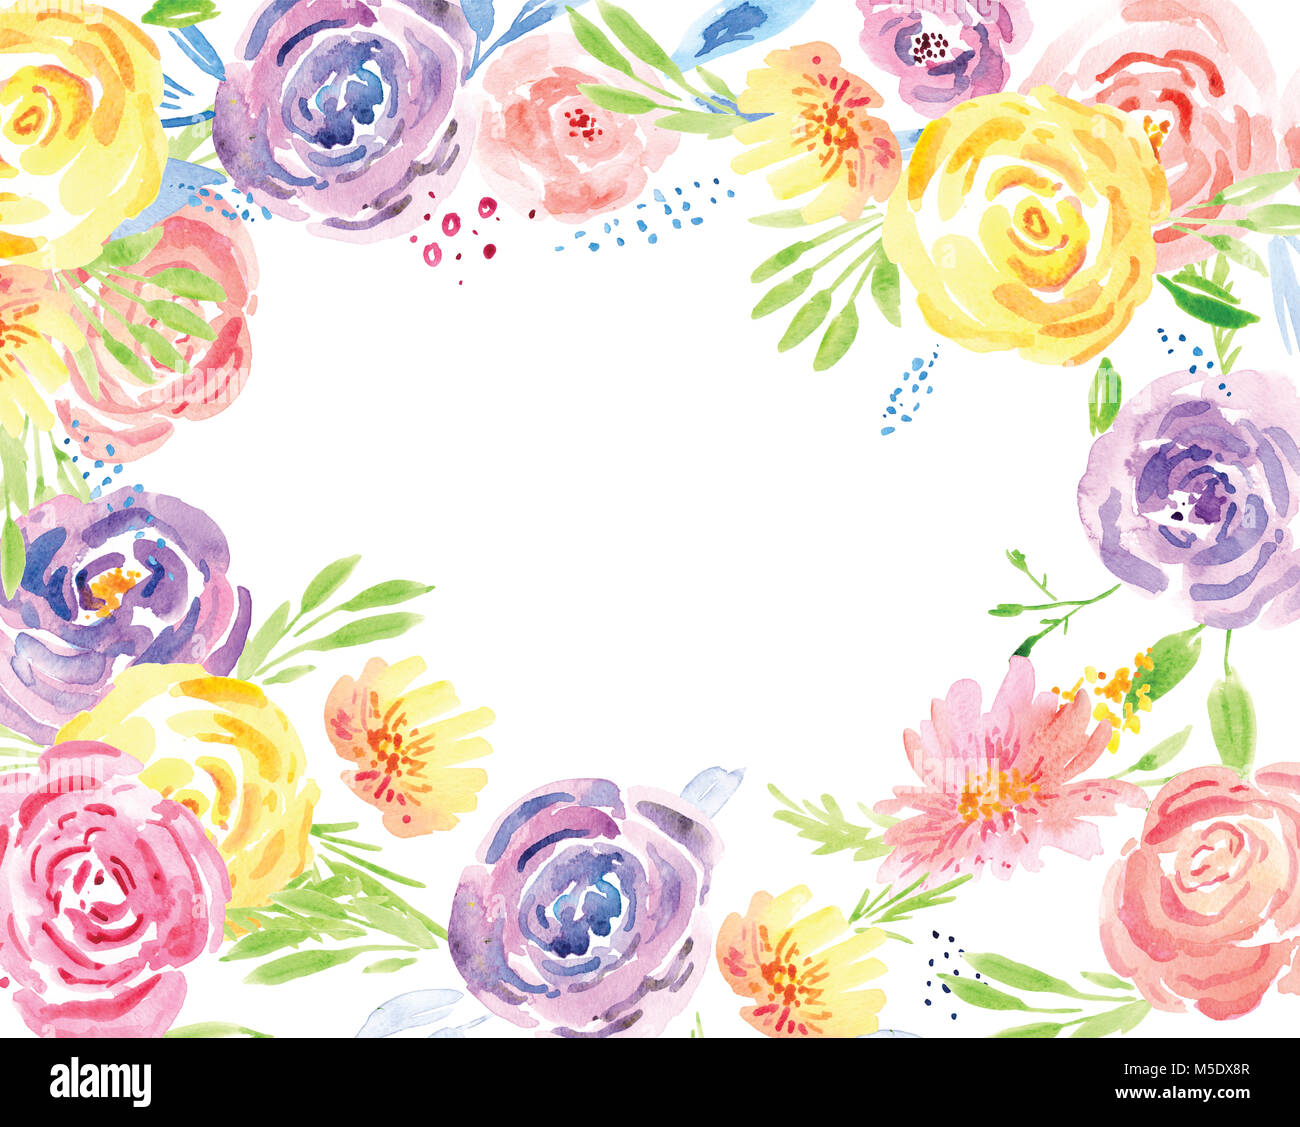 Spring Flower Watercolor Clip Art. Hand Painted Flower Bouquets - Stock Image